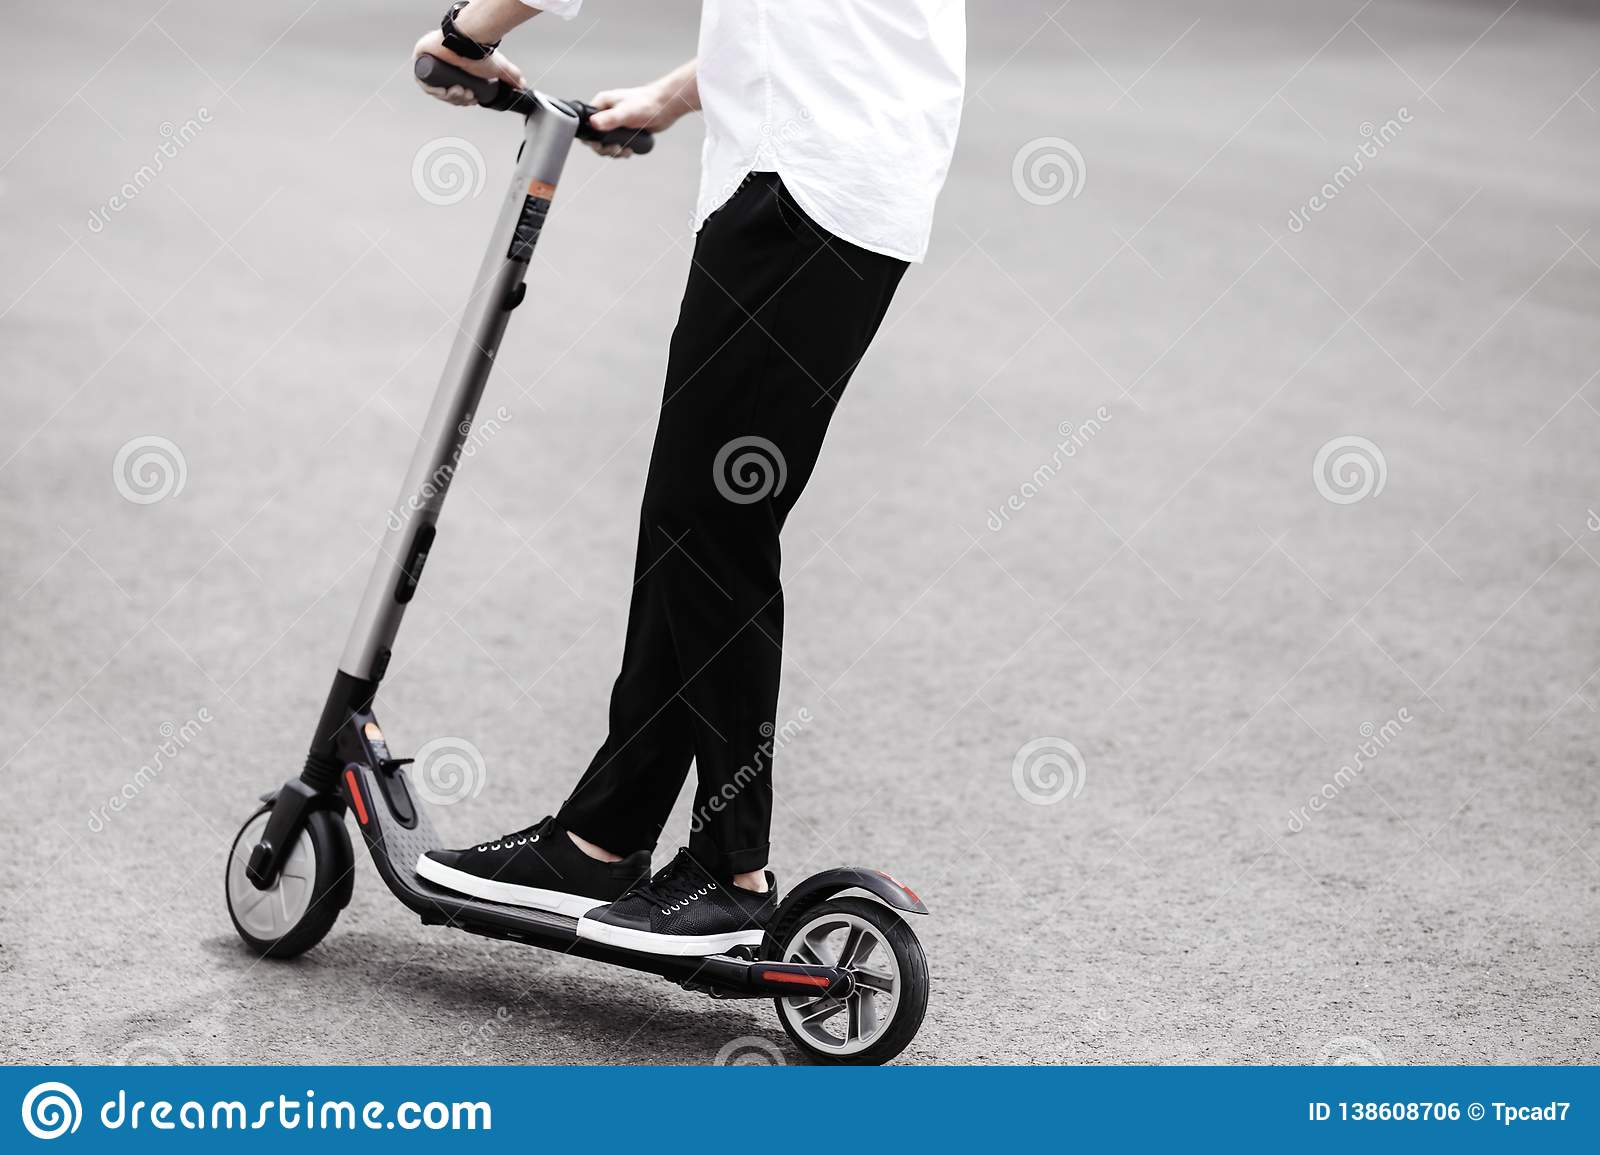 Modern man in stylish black and white outfit riding electric sco